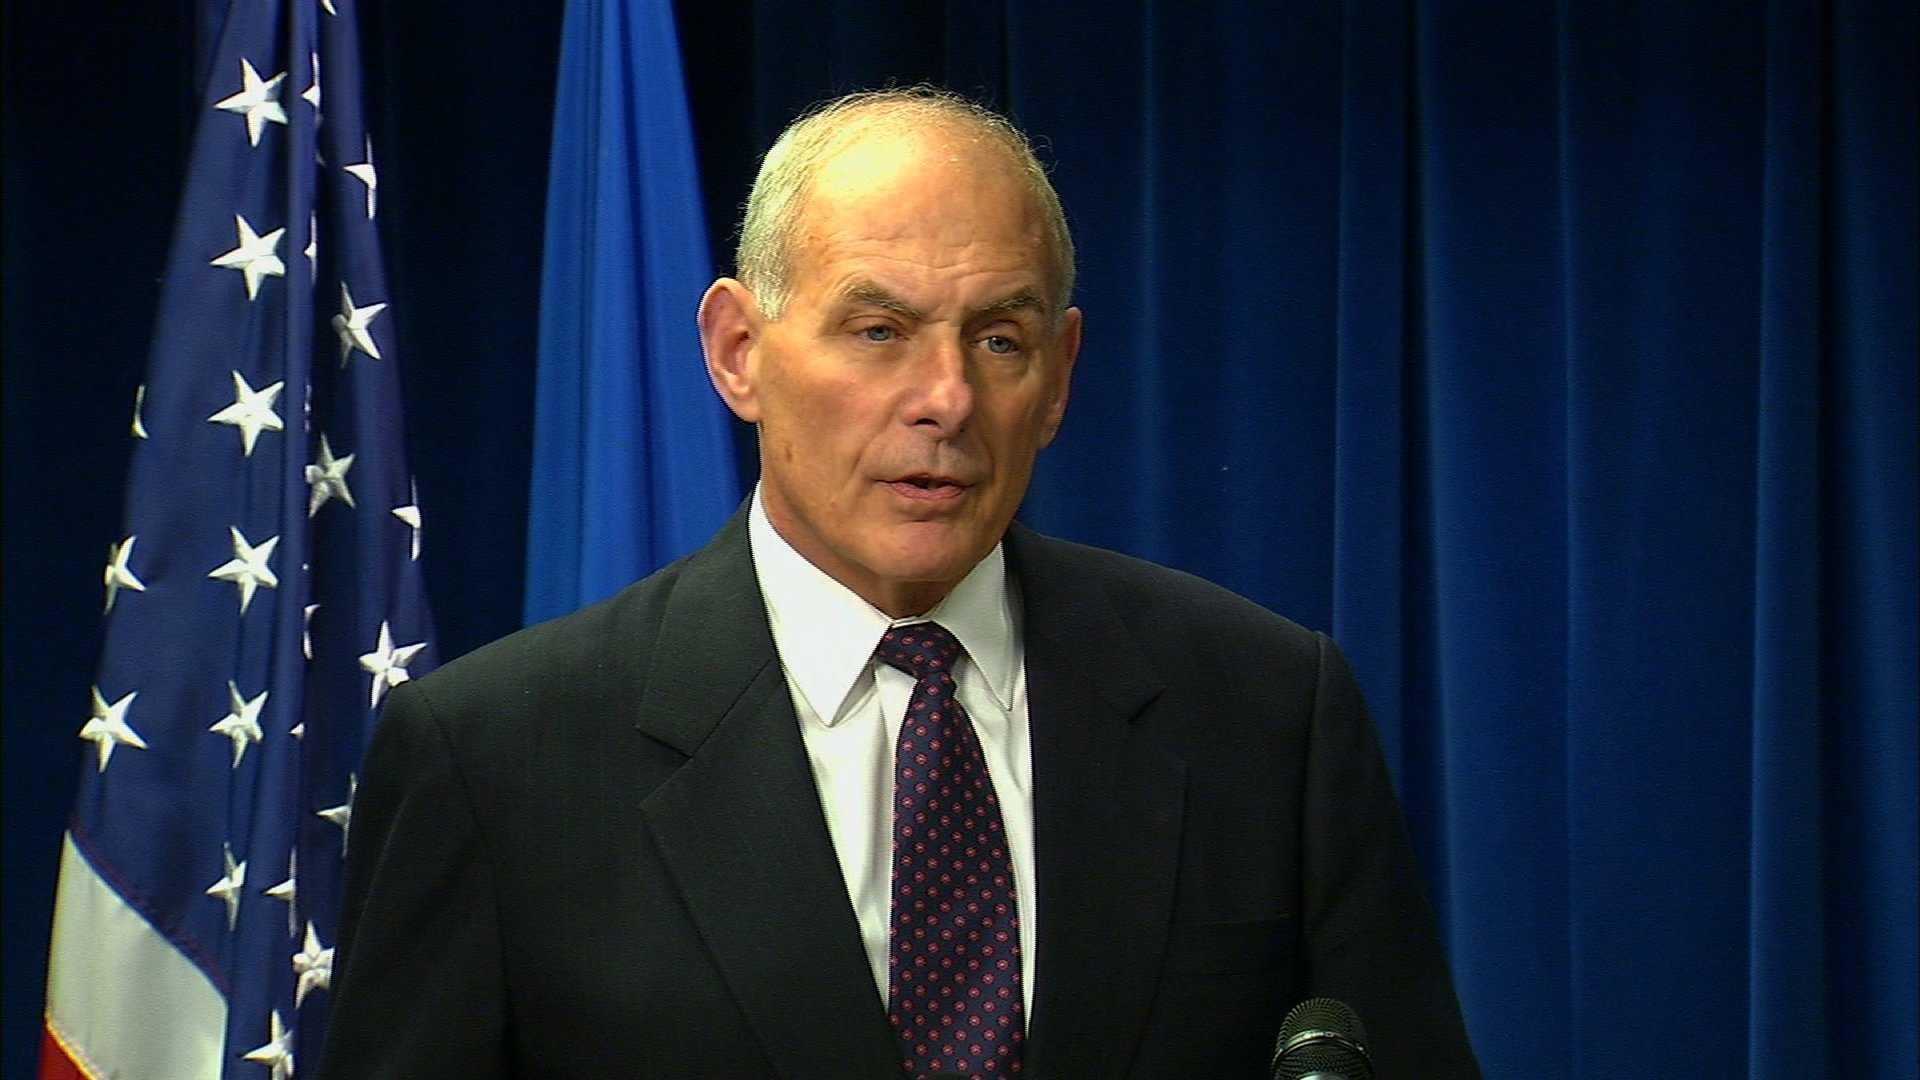 Incoming White House Chief of Staff John Kelly